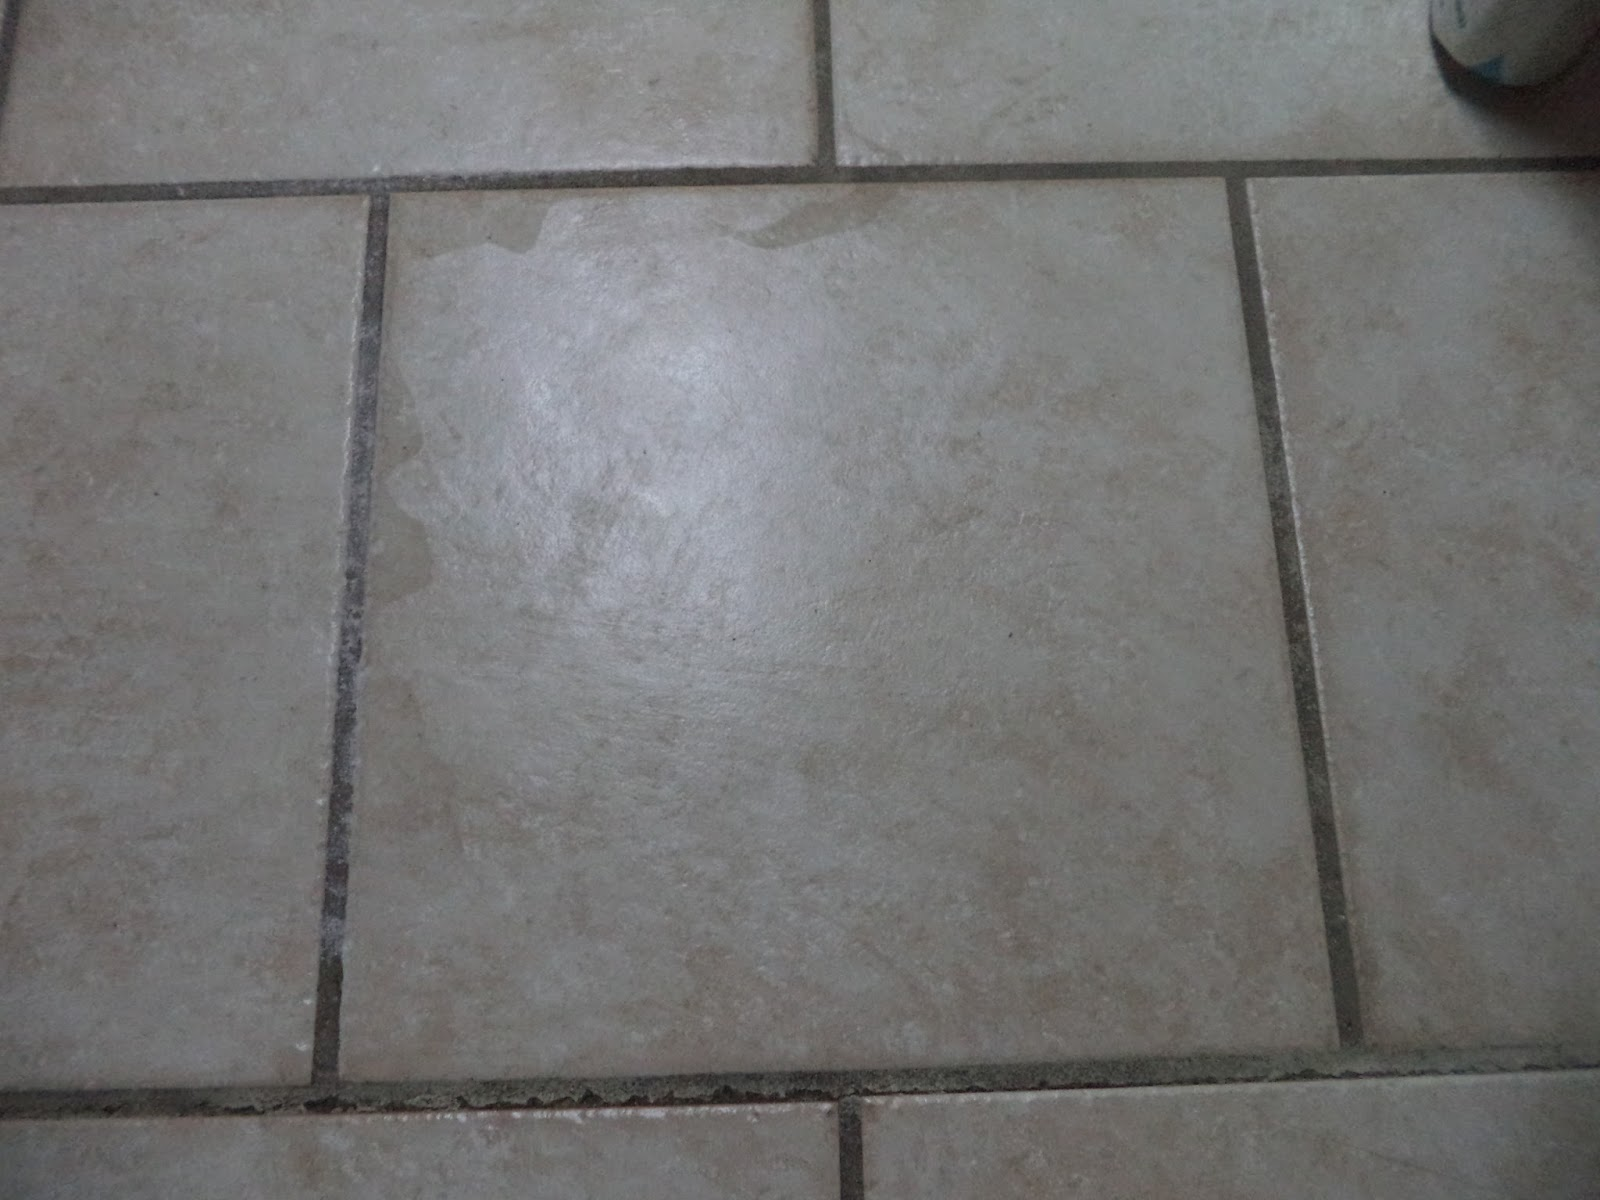 The unperfect family how to clean kitchen tile grout how to clean kitchen tile grout dailygadgetfo Choice Image